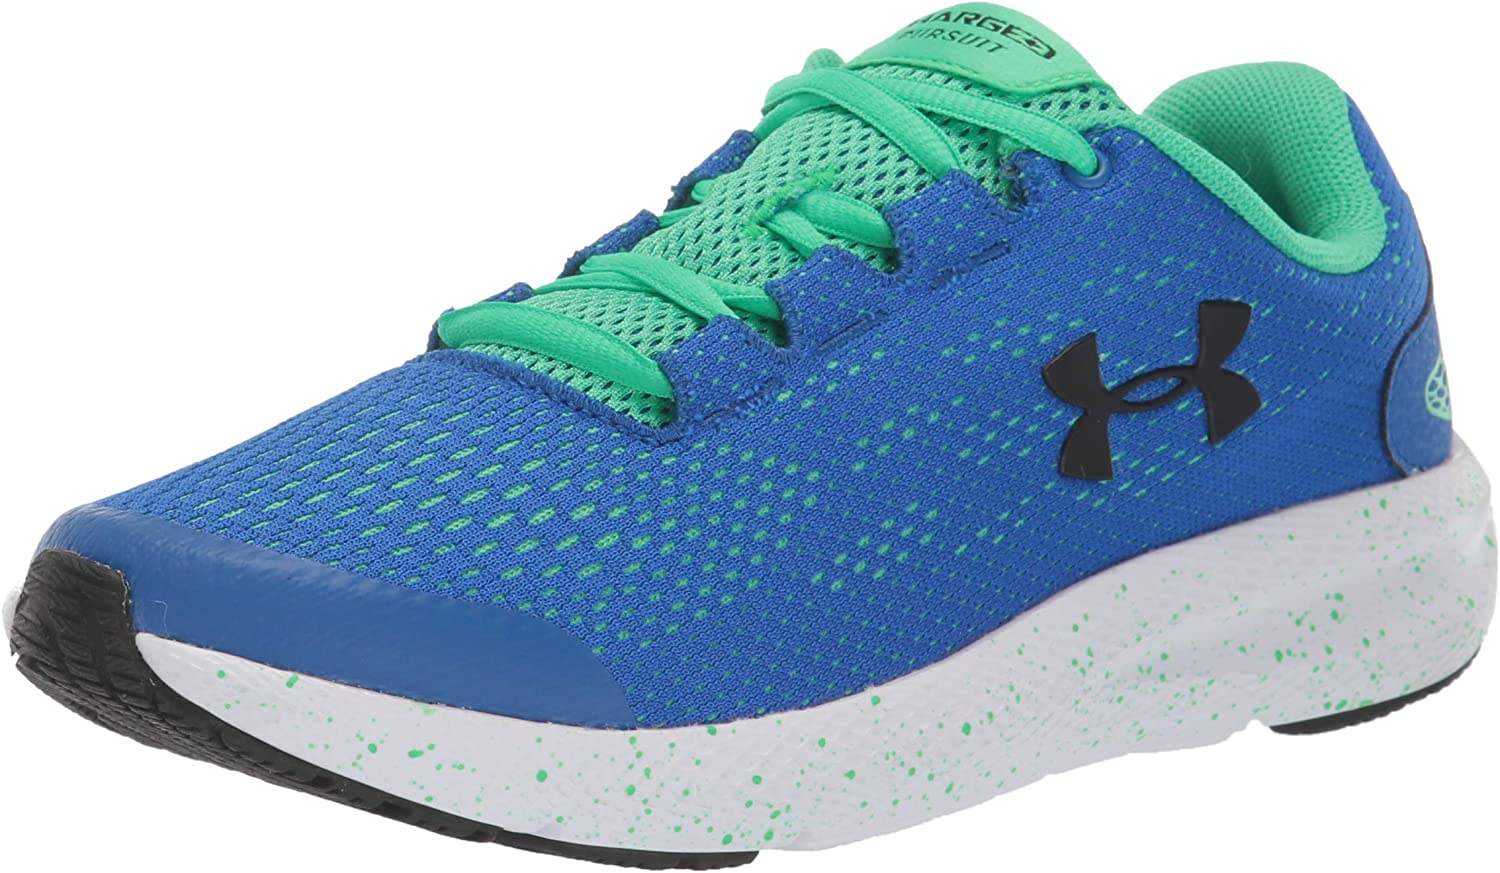 Under Armour Women's Inventory cleanup selling sale Charged trend rank Shoe Pursuit Running 2